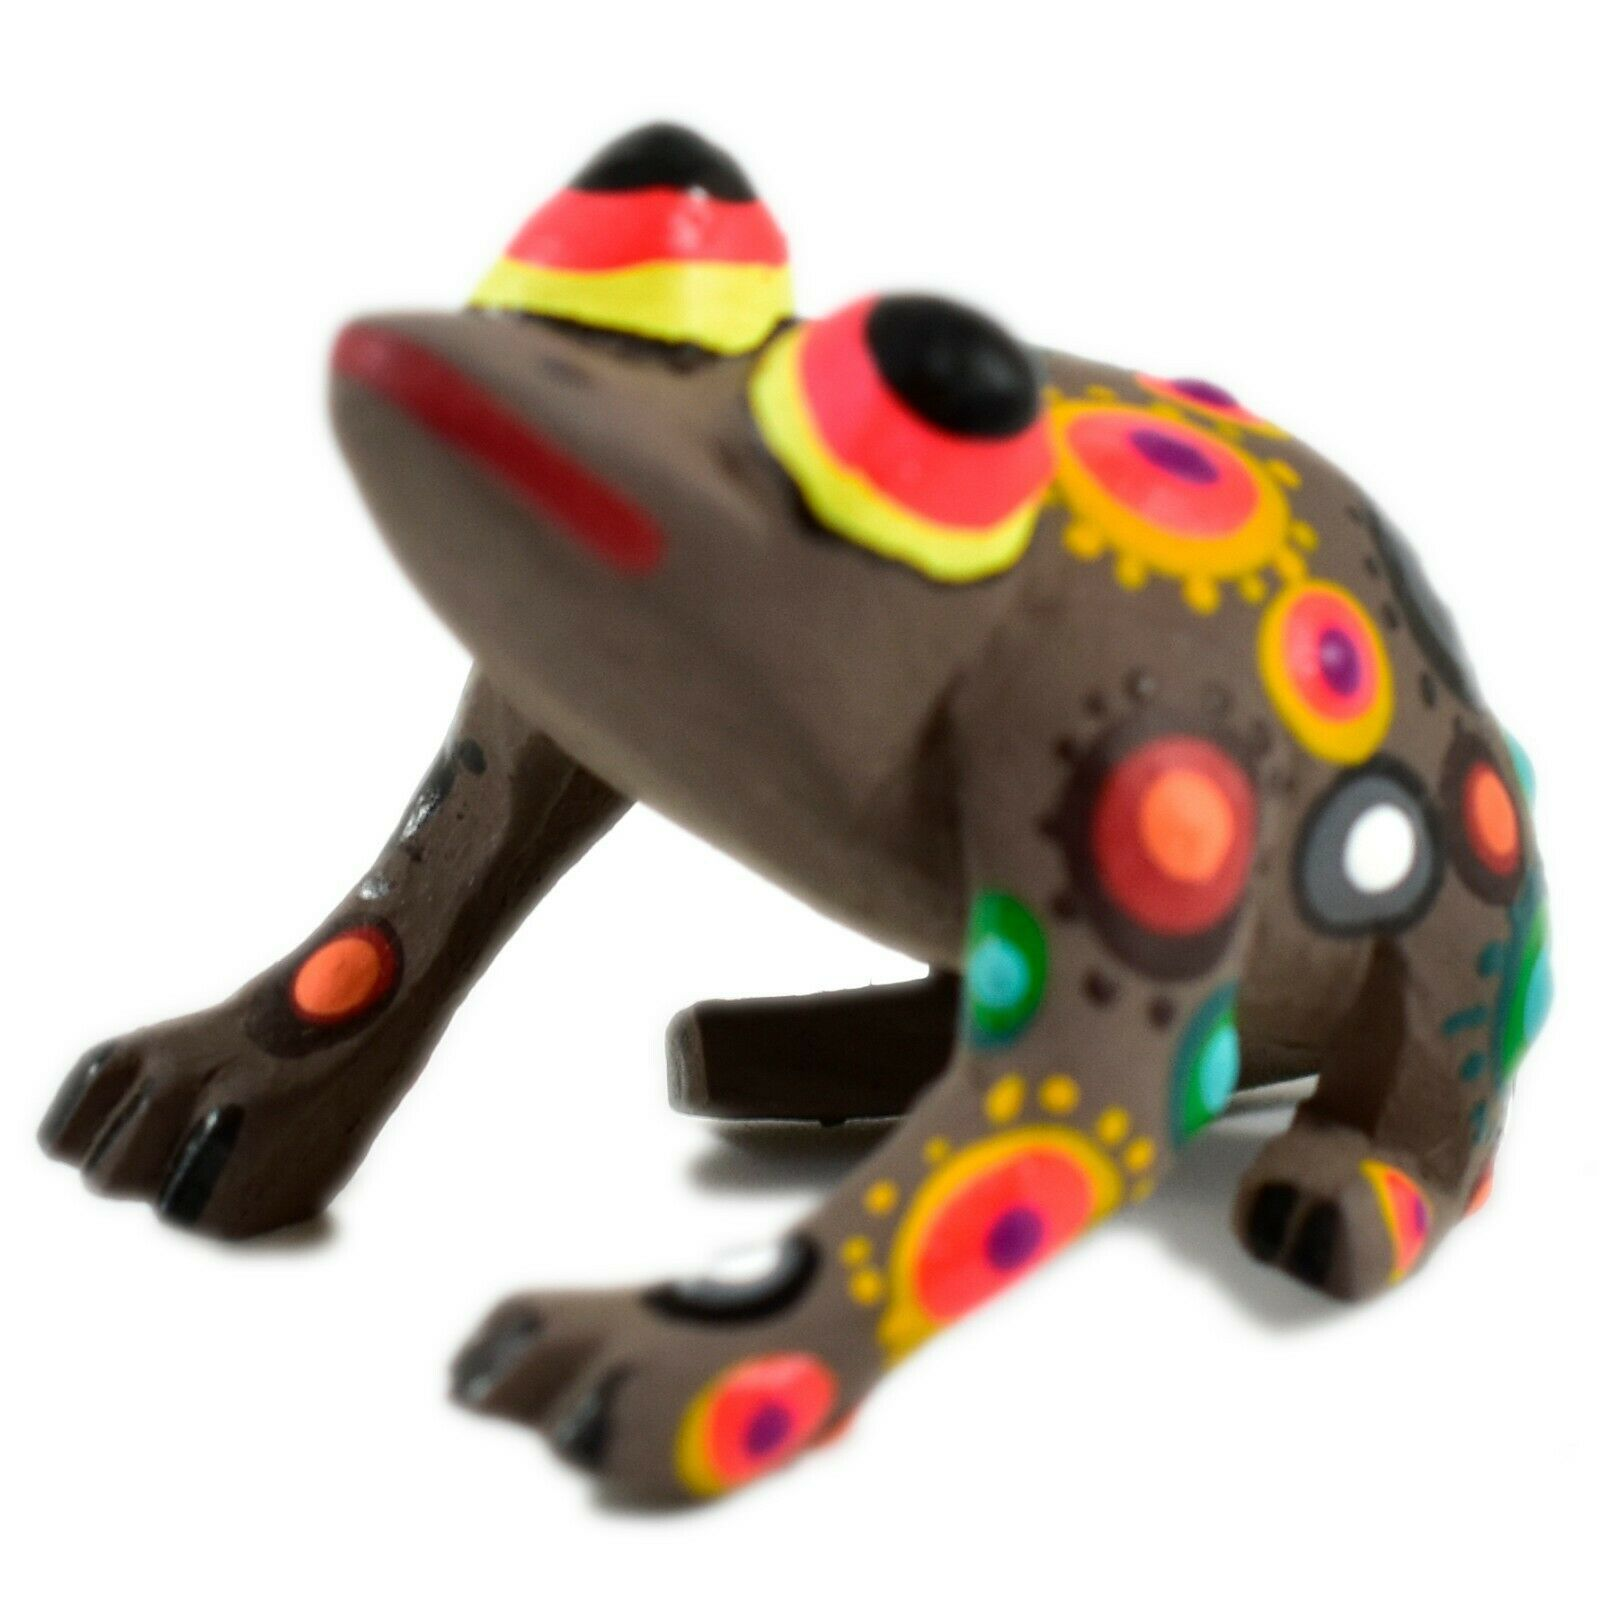 Handmade Oaxacan Copal Wood Carving Painted Folk Art Brown Frog Toad Figurine